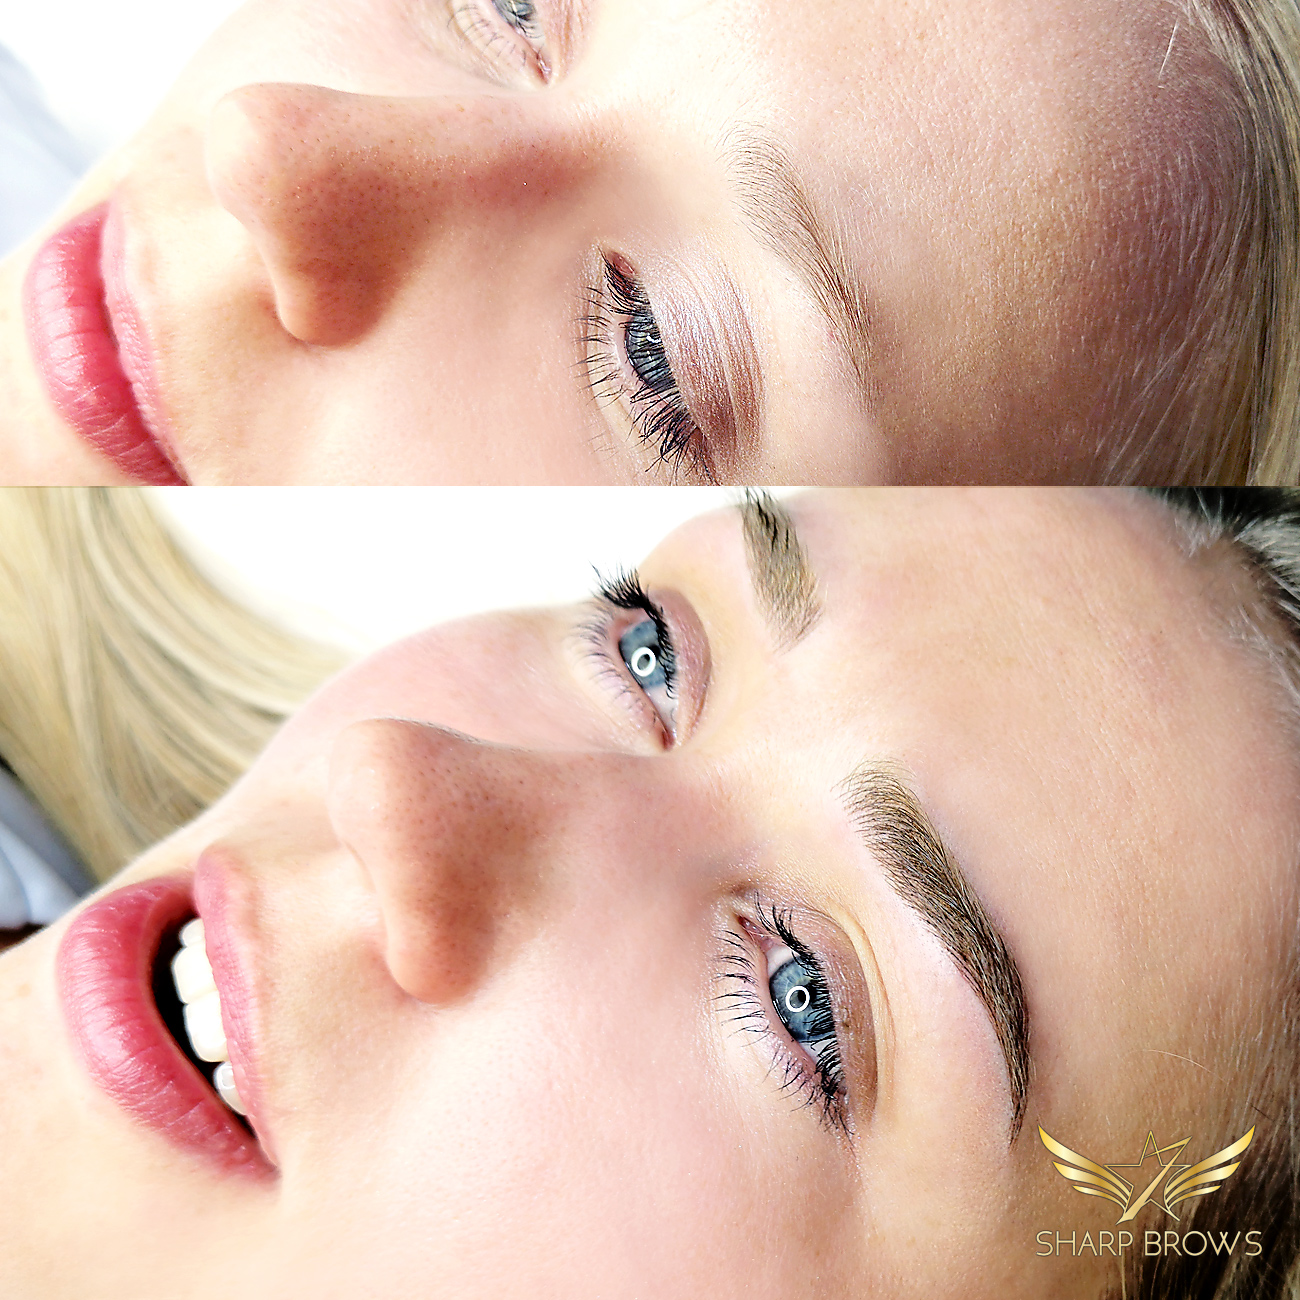 Light microblading - The real beauty of human face is revealed after the brows are corrected. Here is just one sample of the power of light microblading.